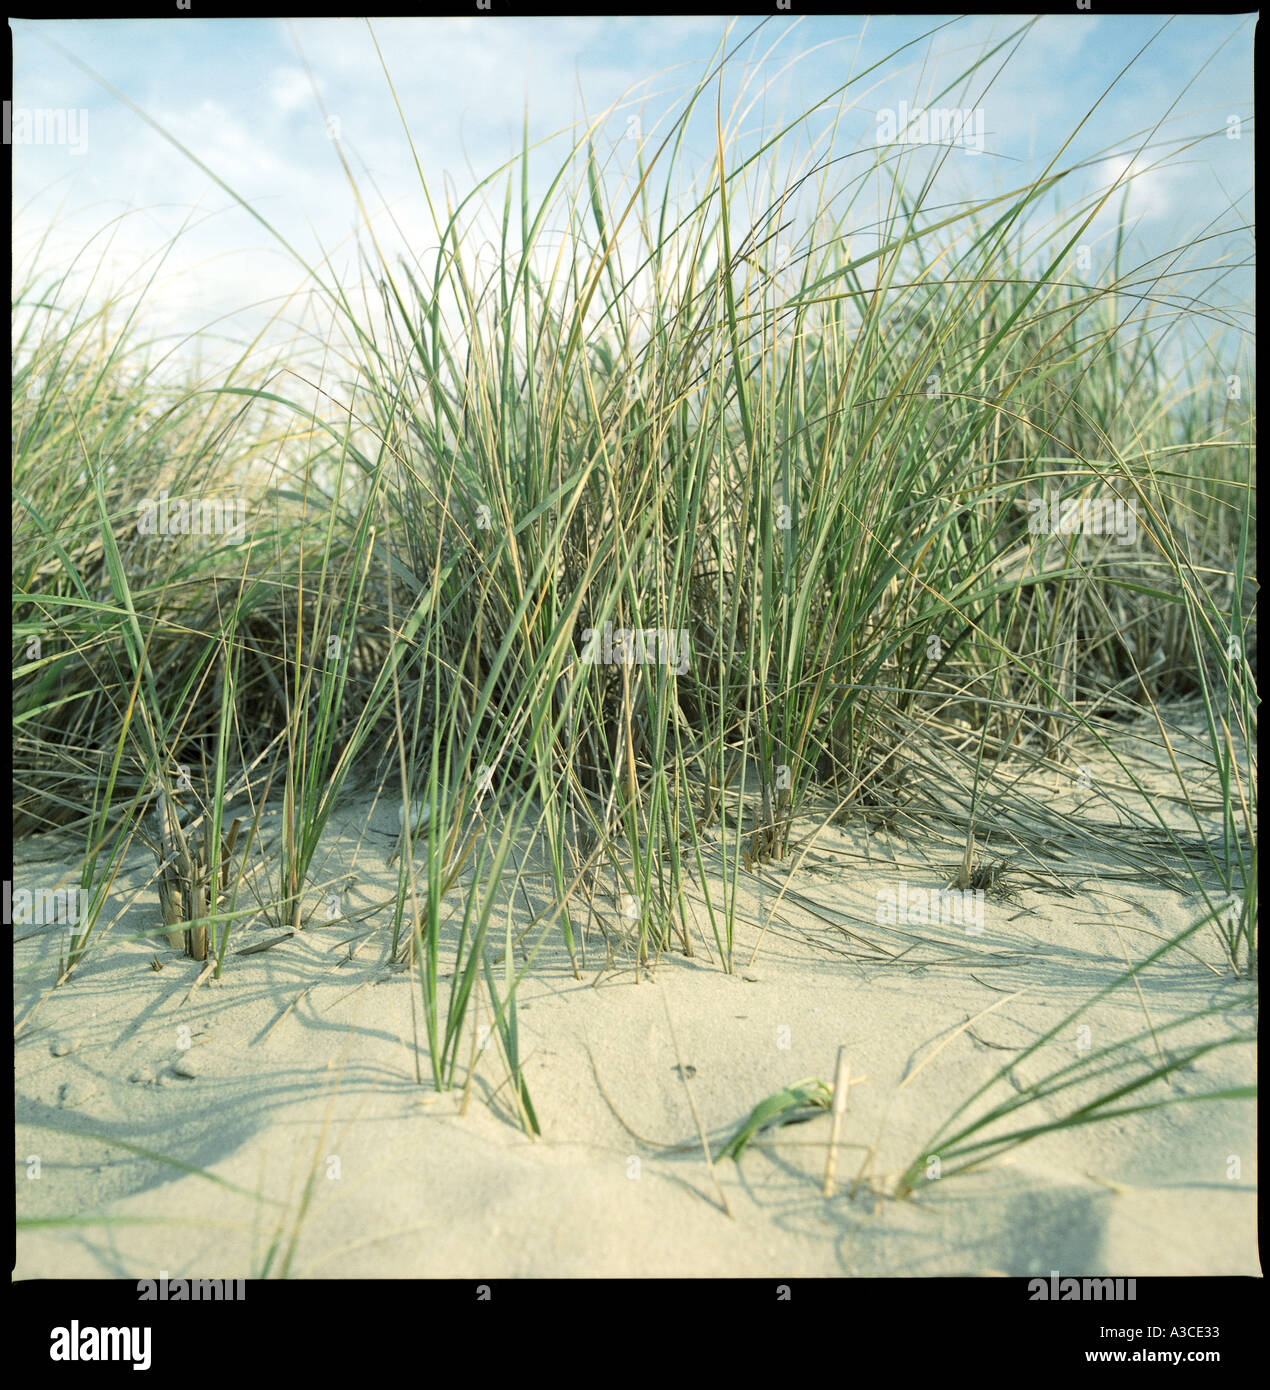 detail of beach showing dunes with grass and a blue sky with a few clouds Cape May in New jersey USA - Stock Image